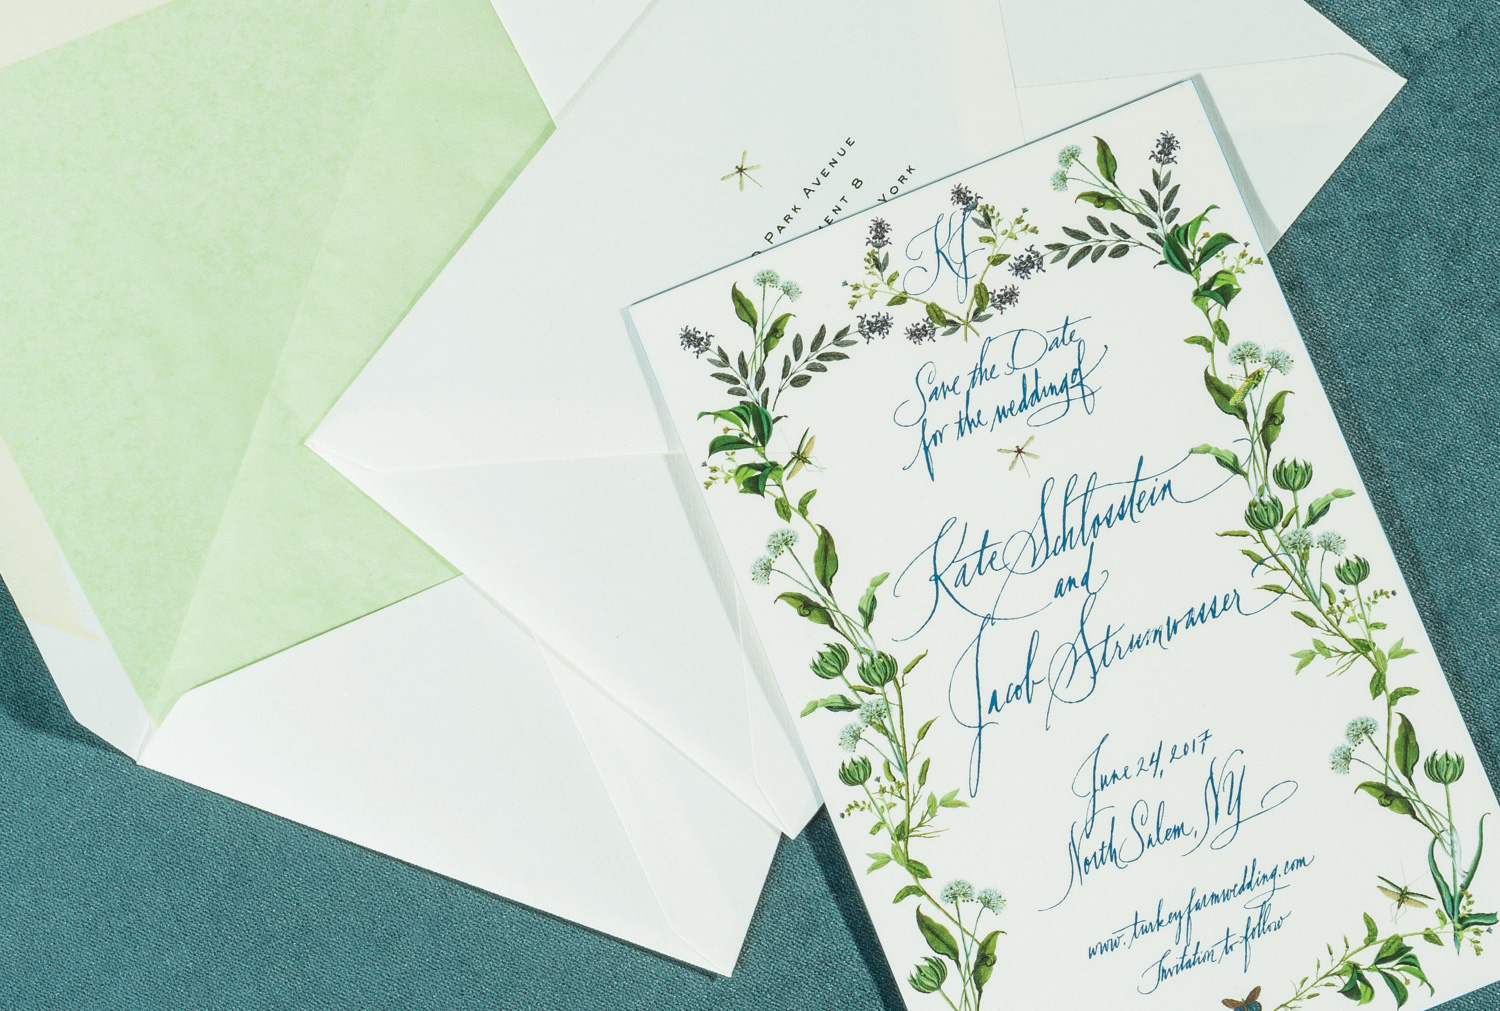 Save the DateWhen to Send: 4-6 Months Before the Wedding - Once you've selected a date and location, it is time to send out Save the Dates to your guest list. If you are hosting a destination wedding, it is important to give friends and family as much notice as possible to make travel arrangements. This piece can coordinate with your invitations, but it is not necessary.